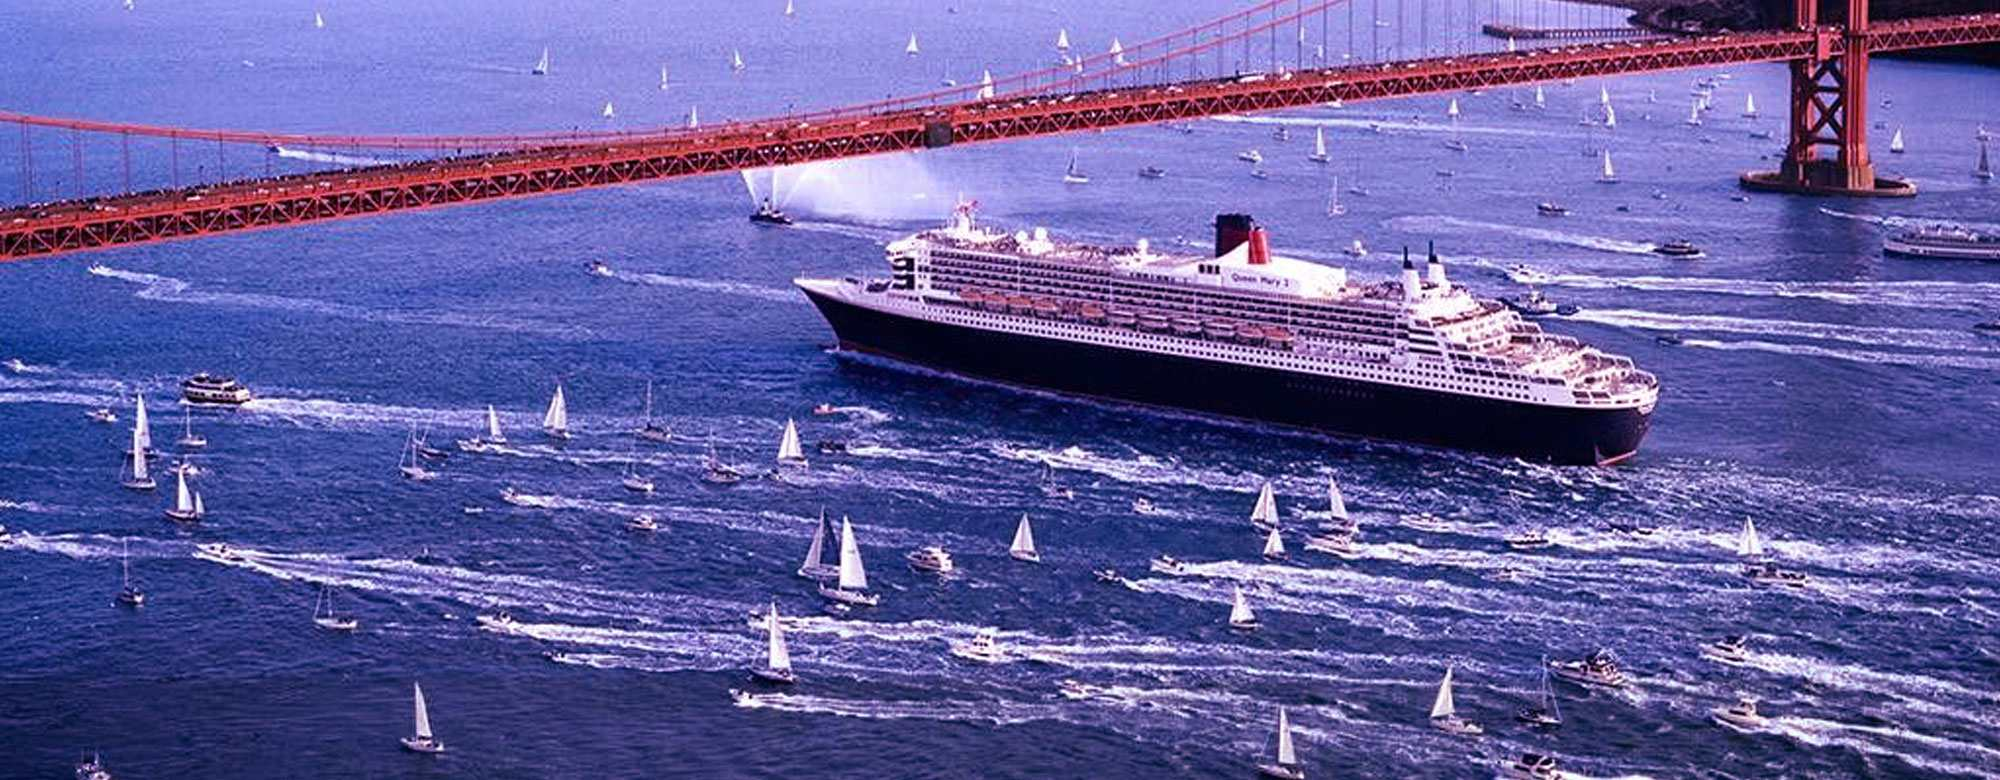 Queen Mary Sanfrancisco